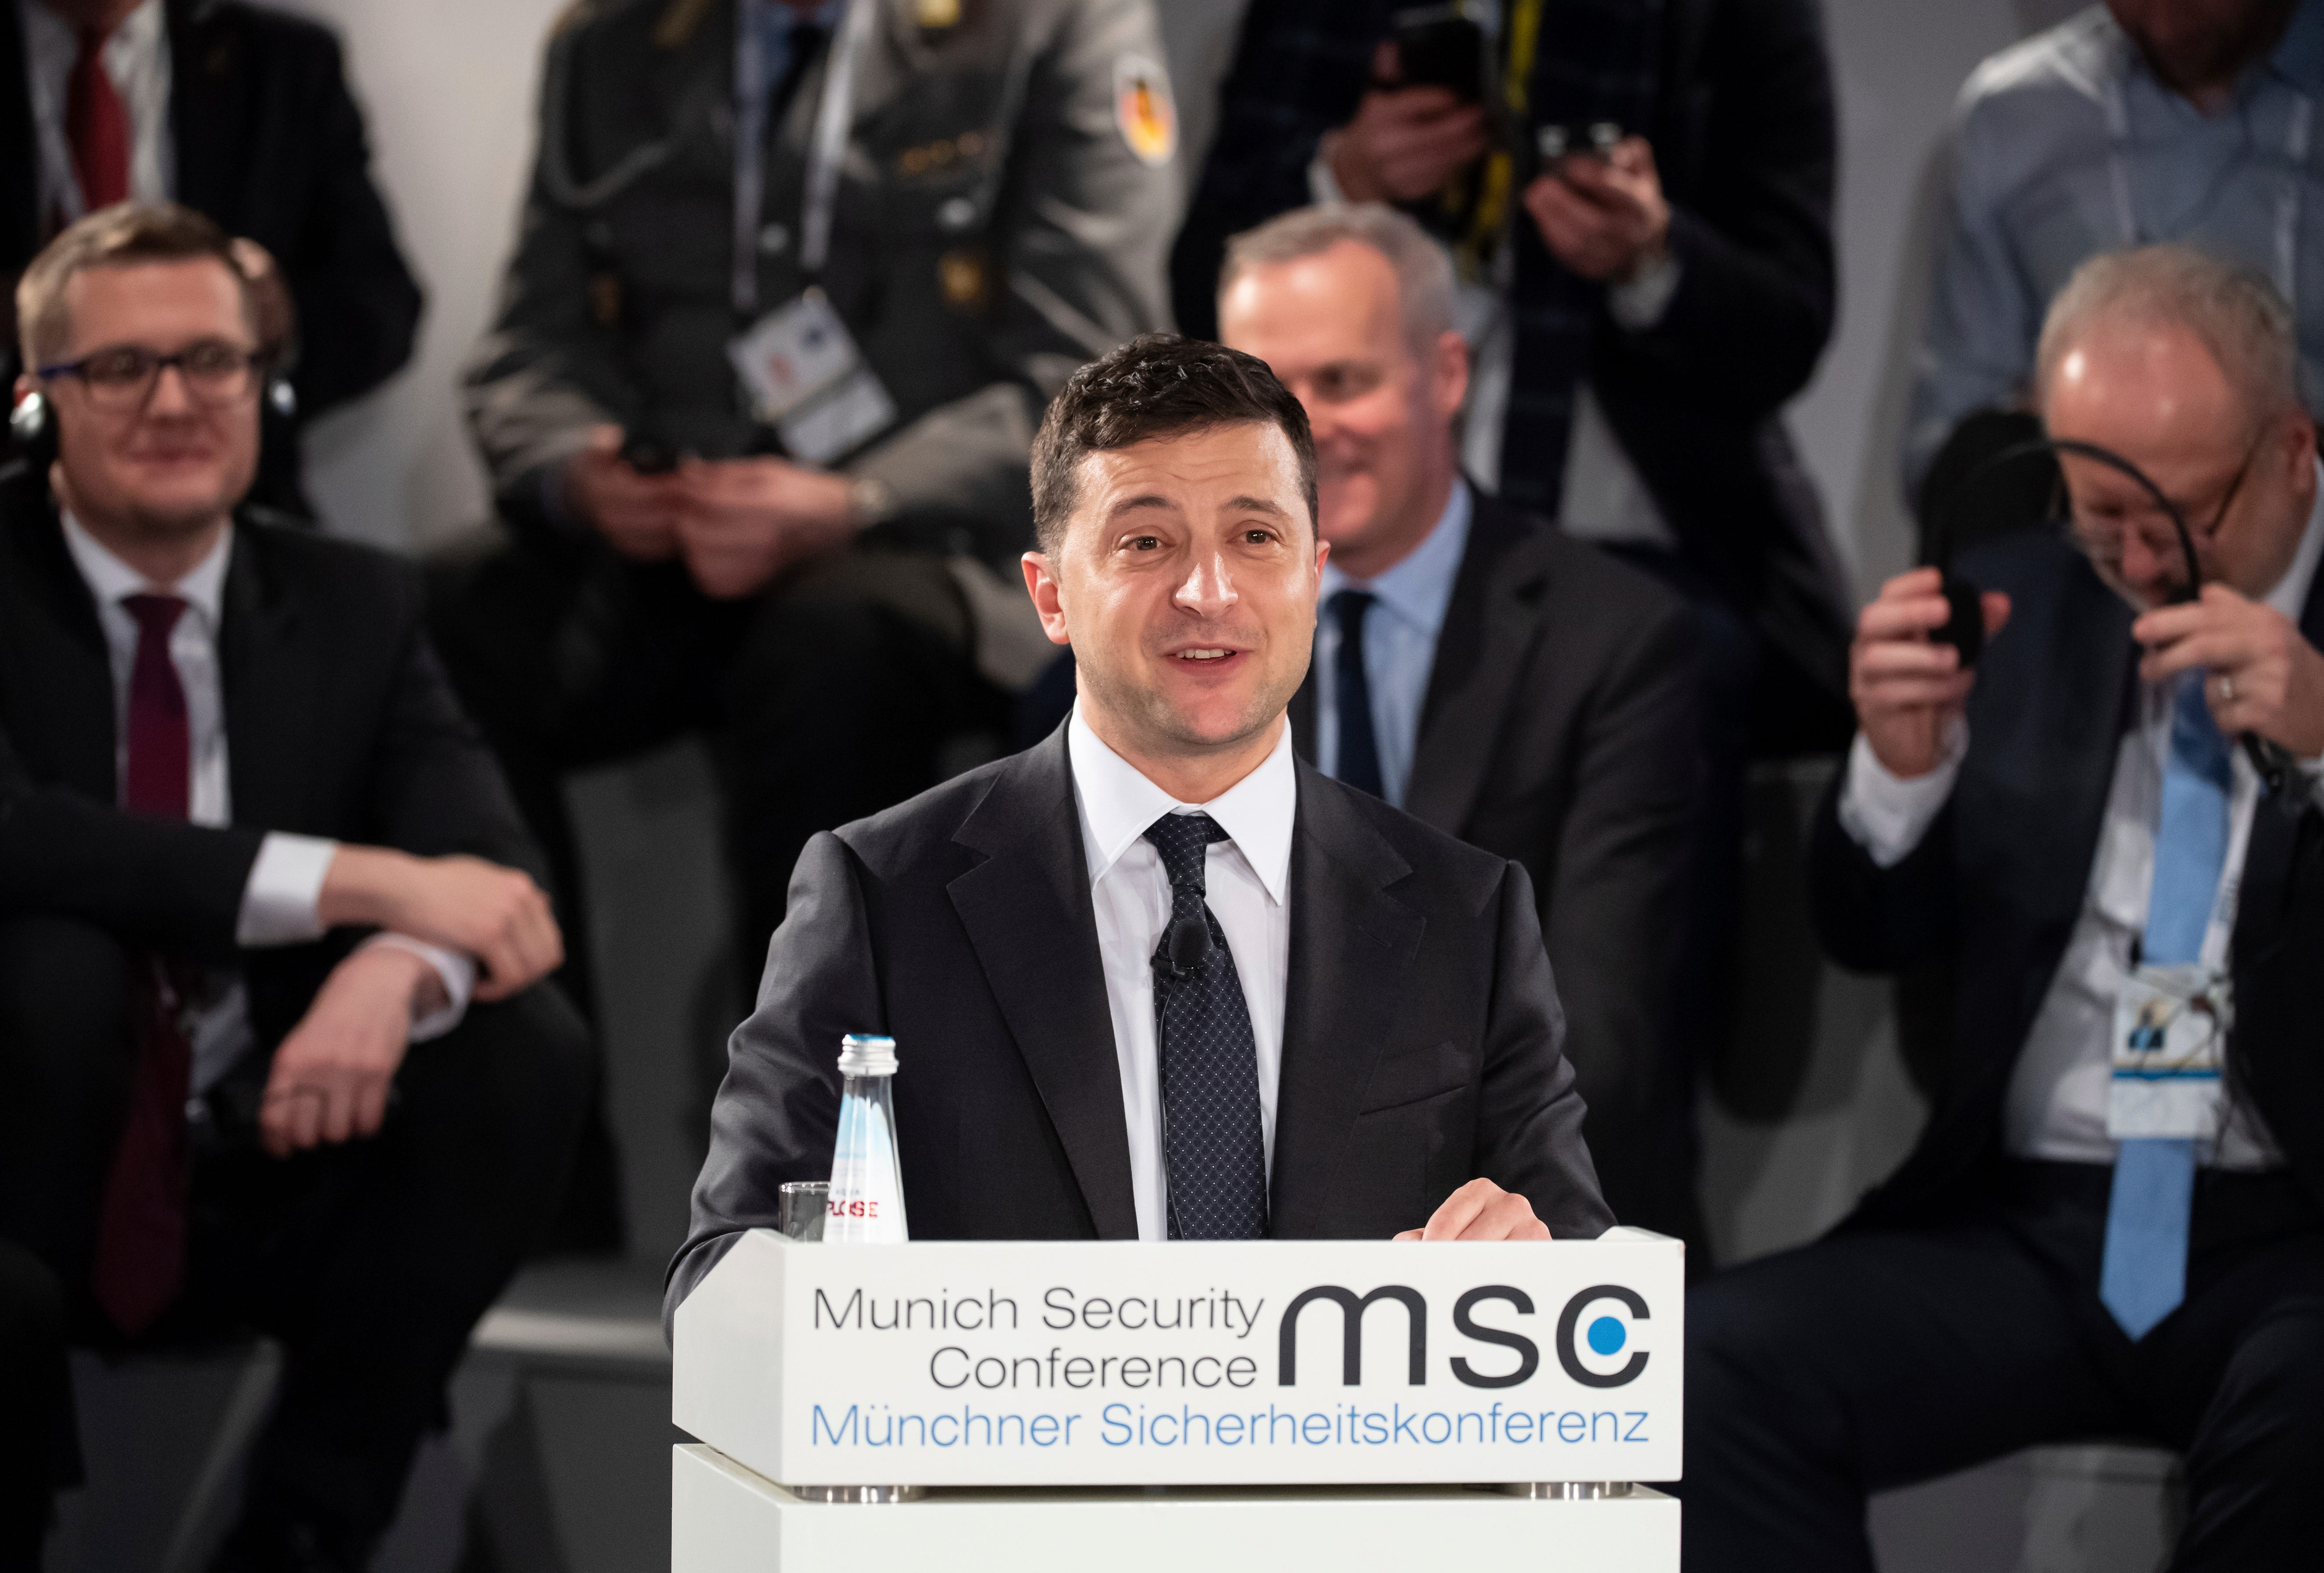 Zelensky responds to Trump s claims:  It s not true that Ukraine is a corrupt country